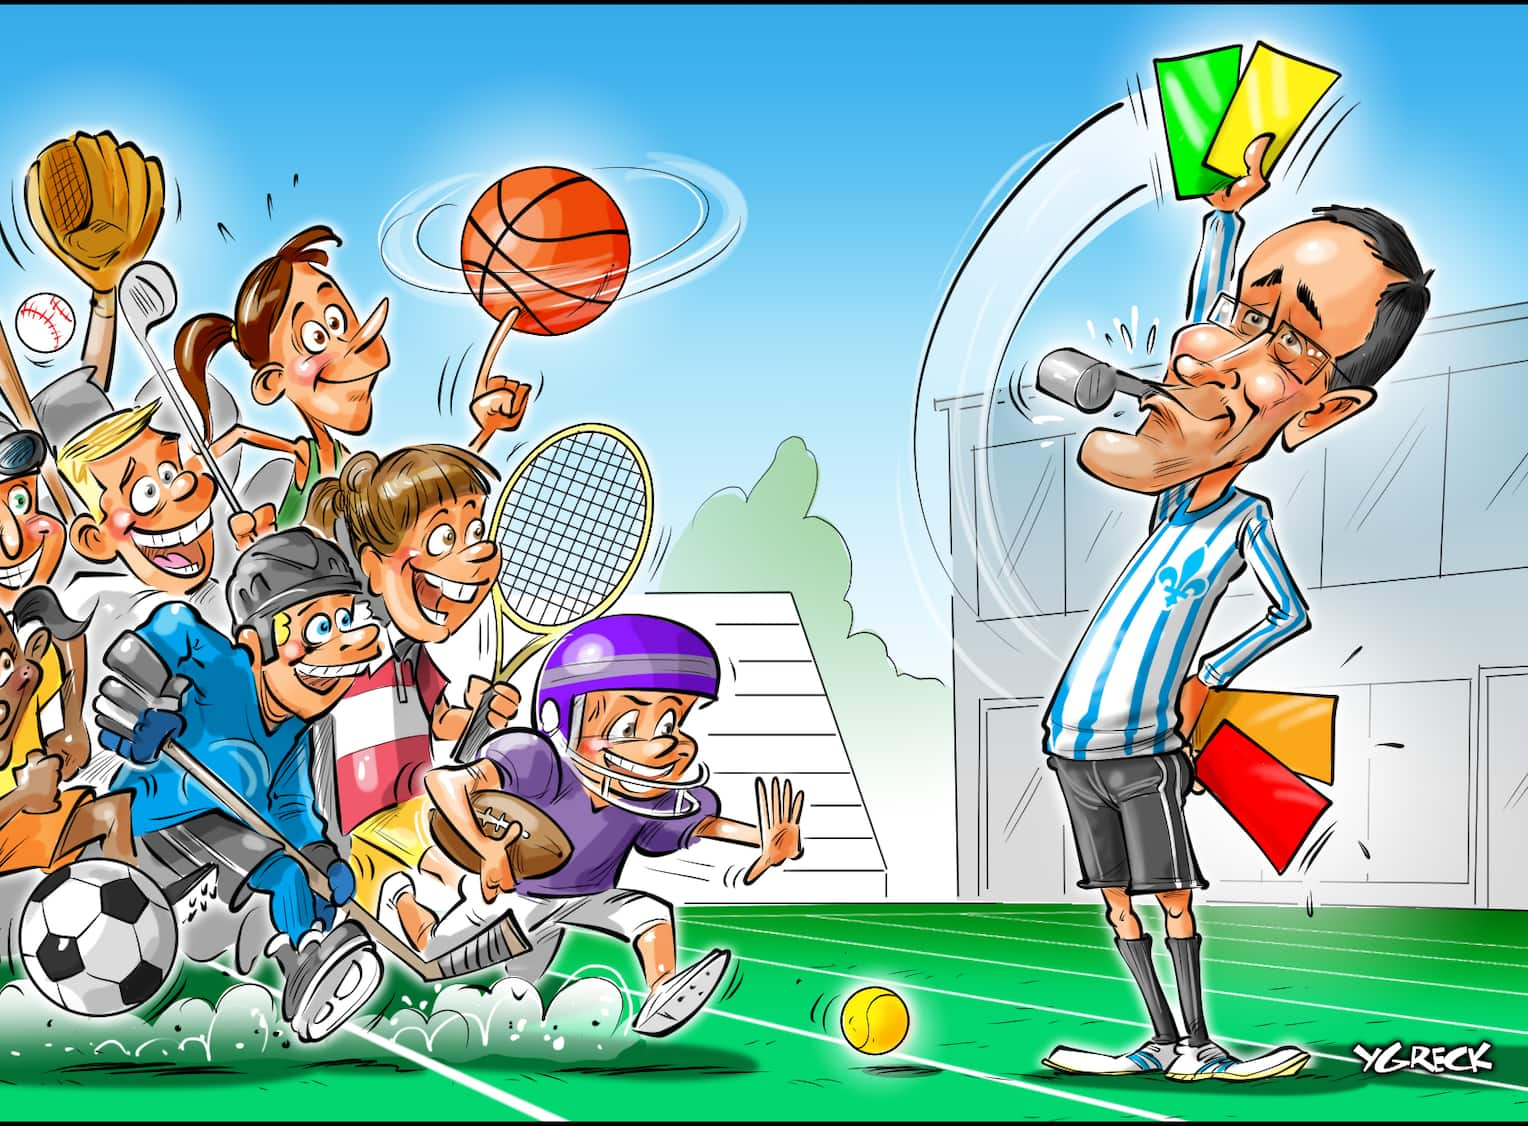 CARICATURES : politiques, judiciaires, sportives ... etc.    (suite 2) - Page 12 Roberge_sports46043e80-81f6-4b6f-8bbe-99baa0c61ca4_ORIGINAL